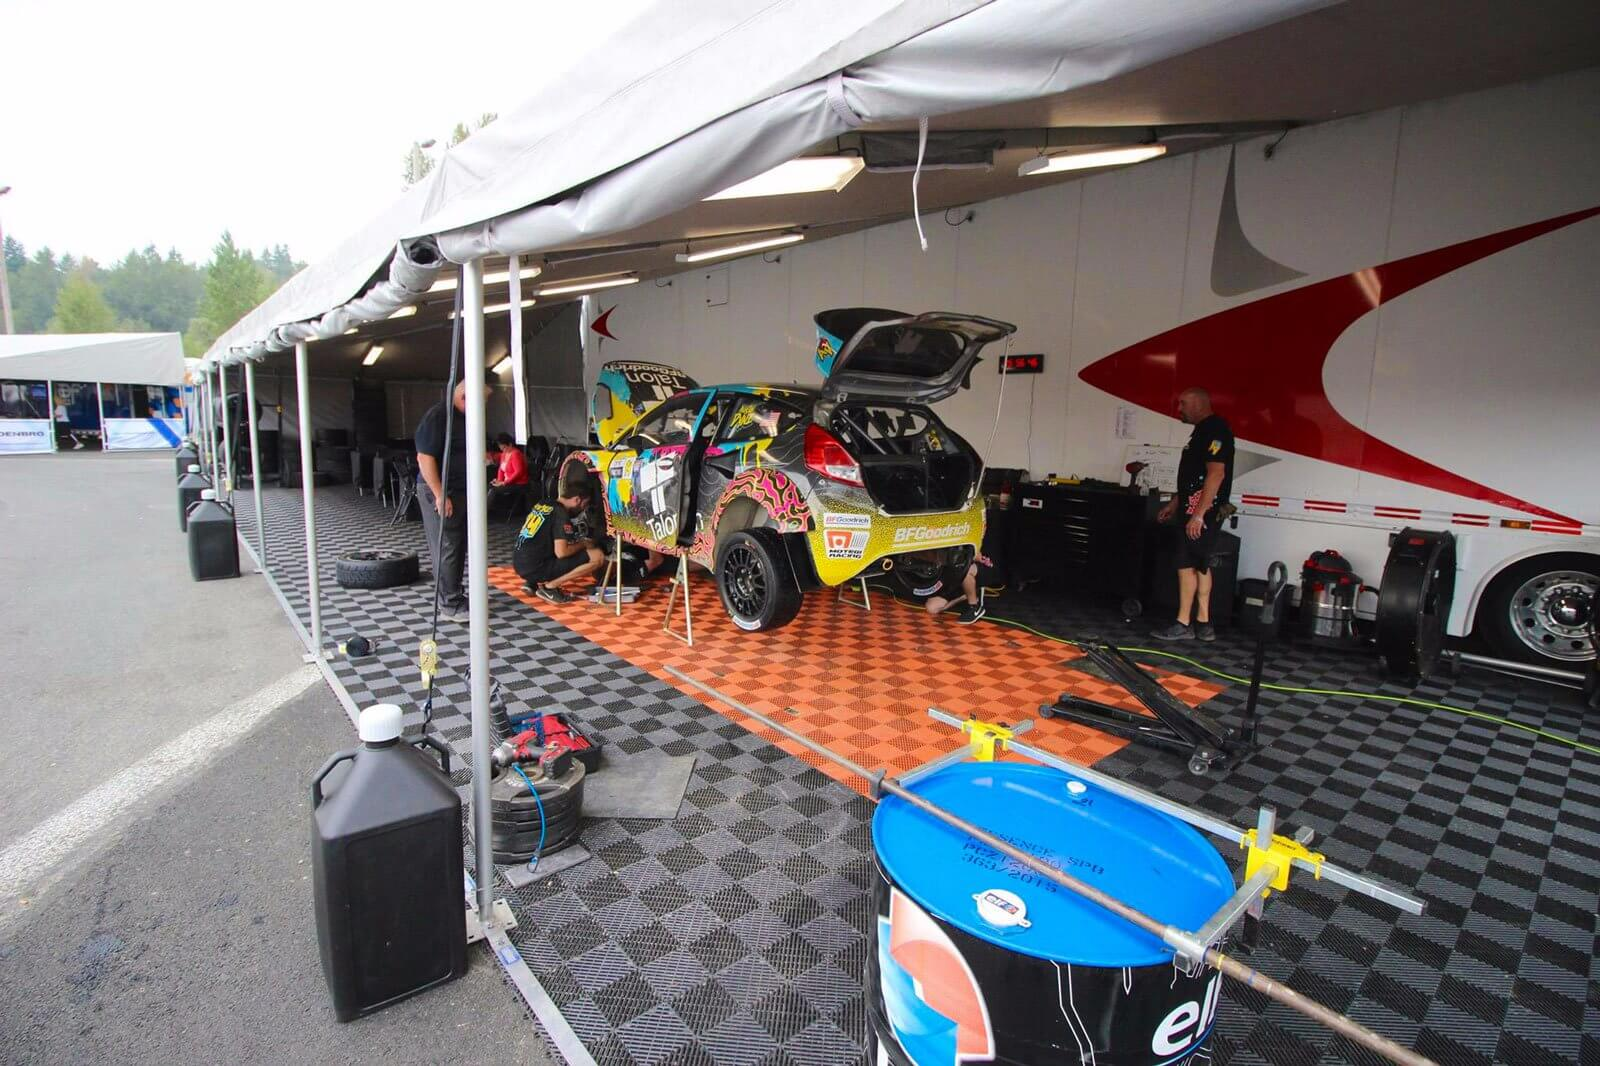 Pit crew at work at the Rallycross event